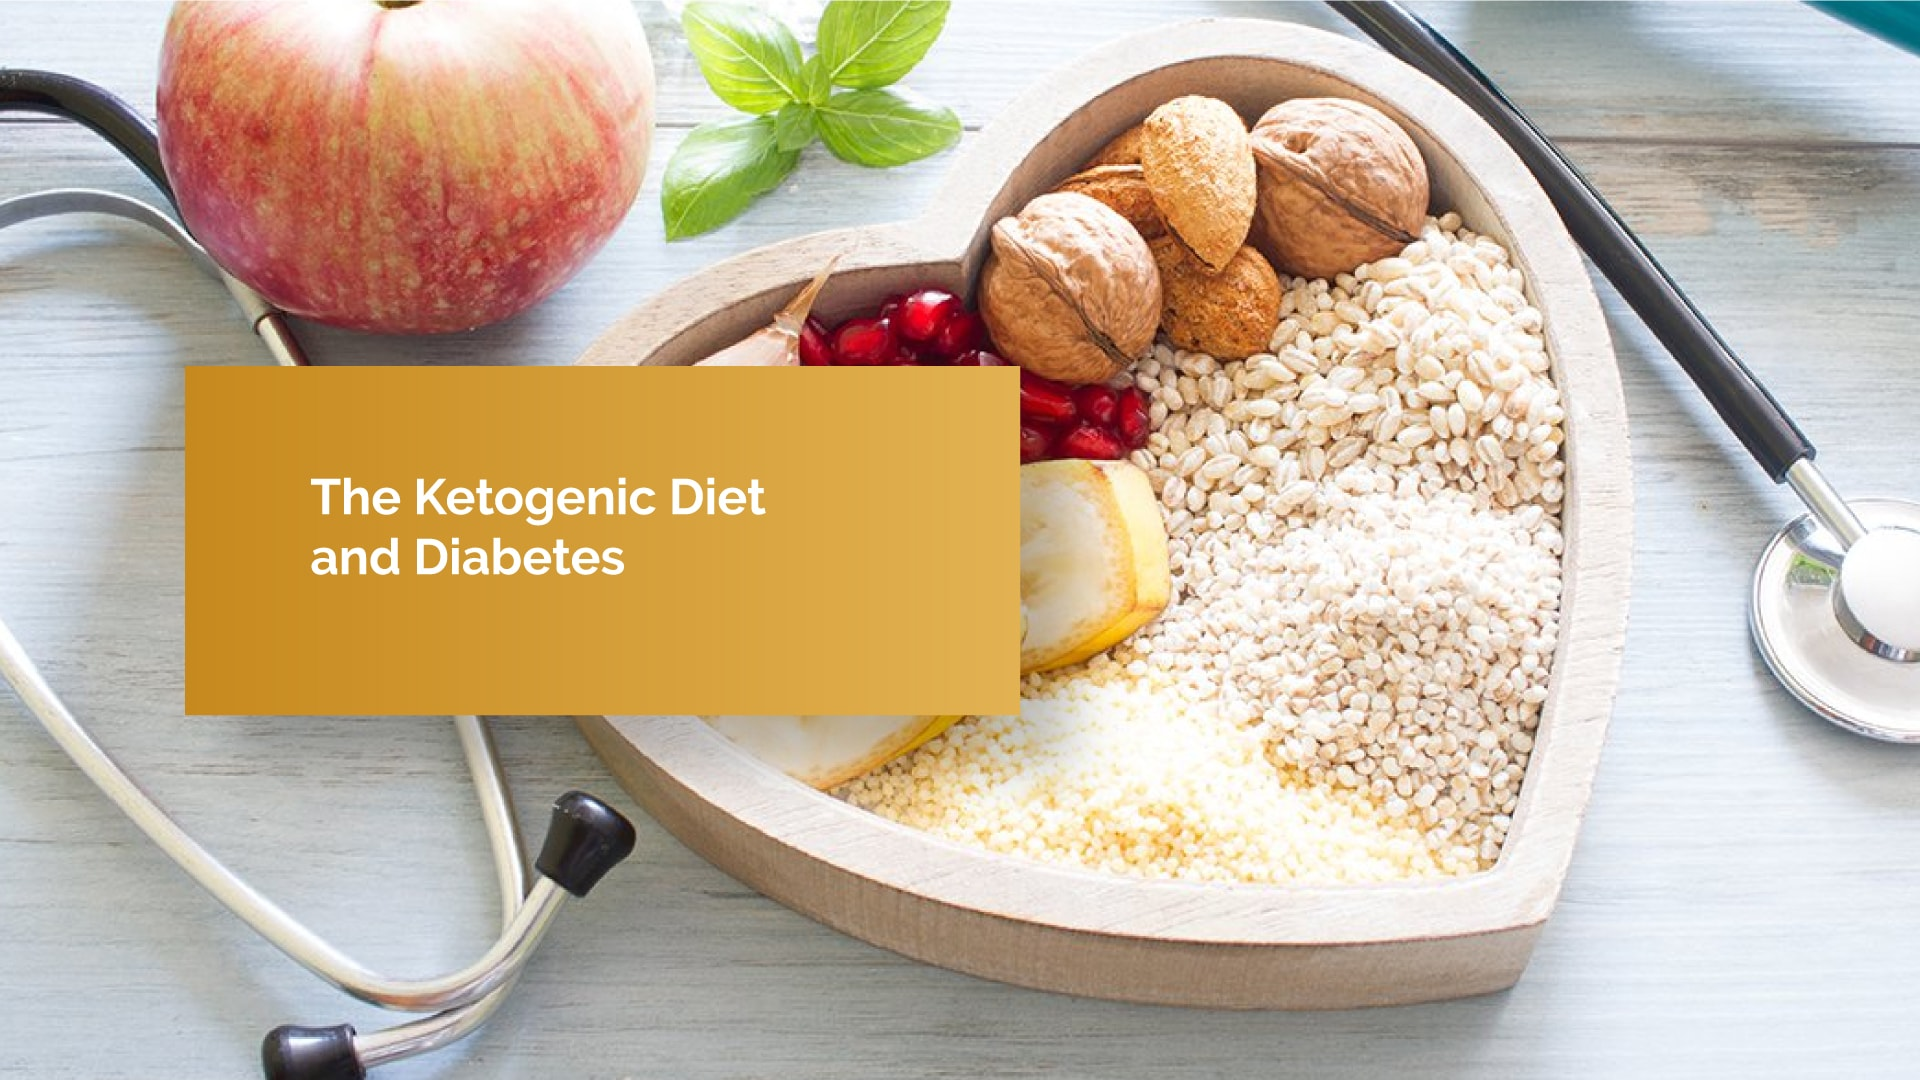 Keto diet for diabetics